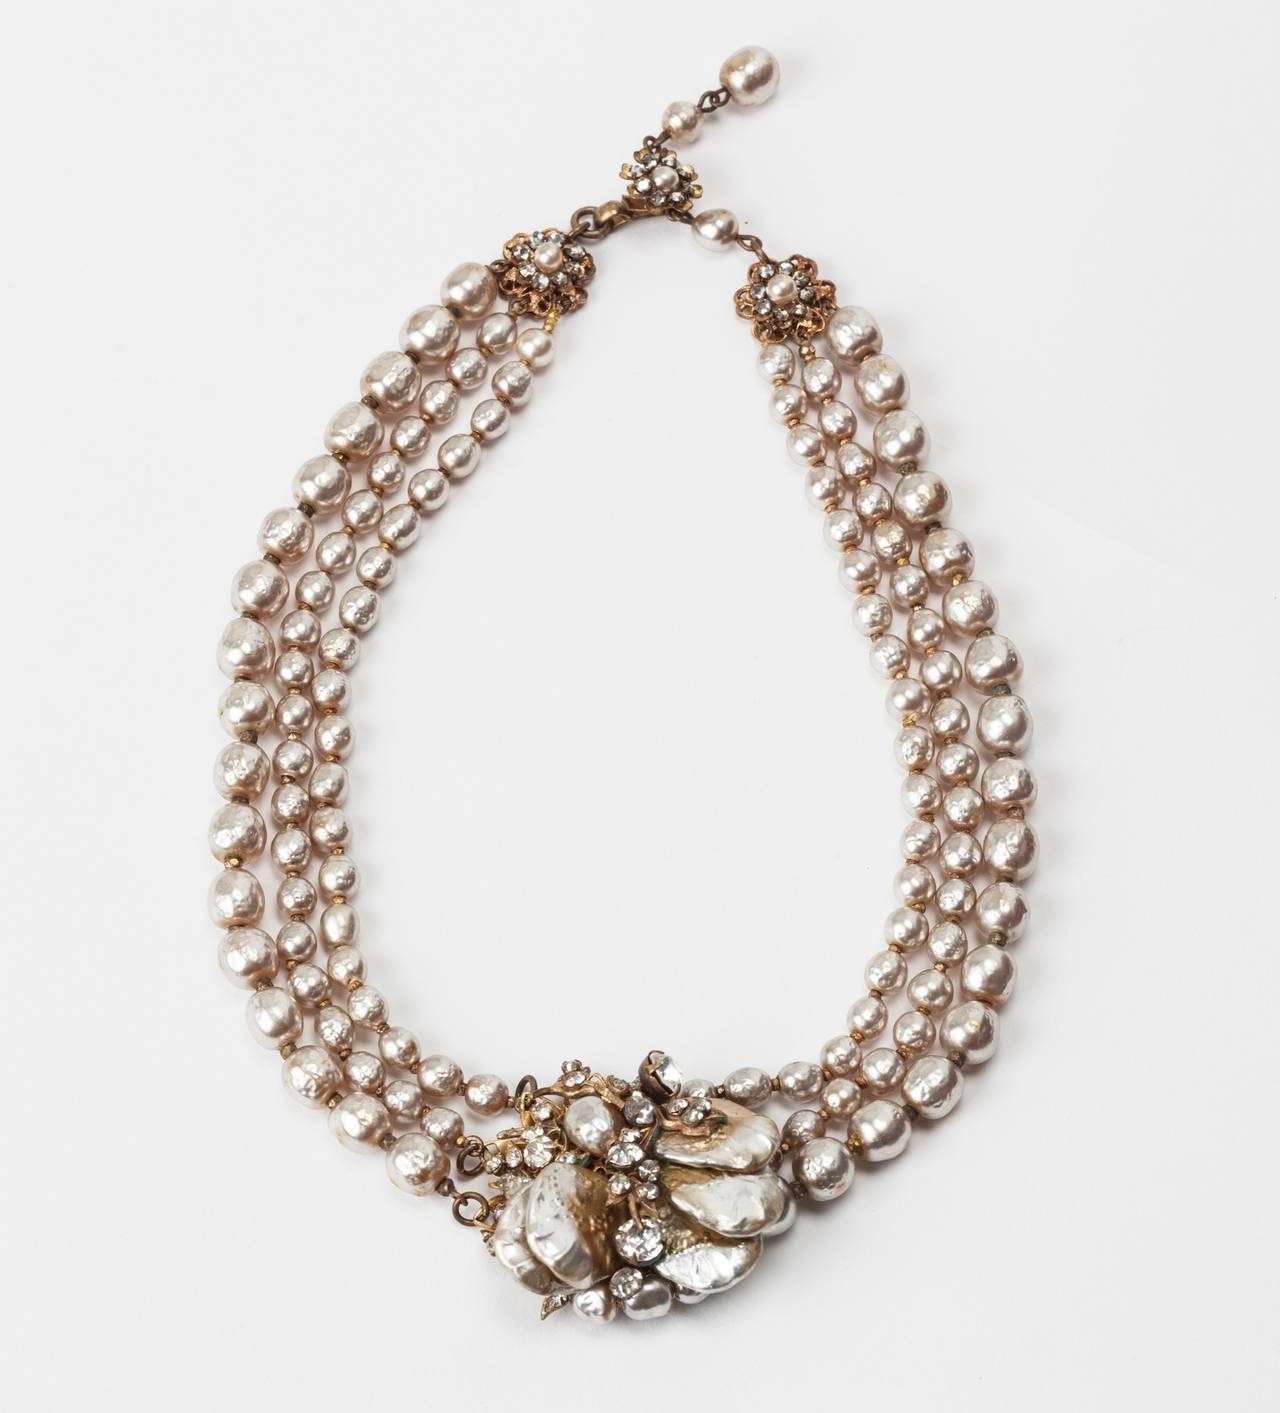 Miriam Haskell Classic three strand (three size) signature baroque faux pearl necklace. The center motif is made of Miriam Haskell's classic signature Russian gilt filigrees and crystal pastes. Vari sized baroque pearl petals with round and oval